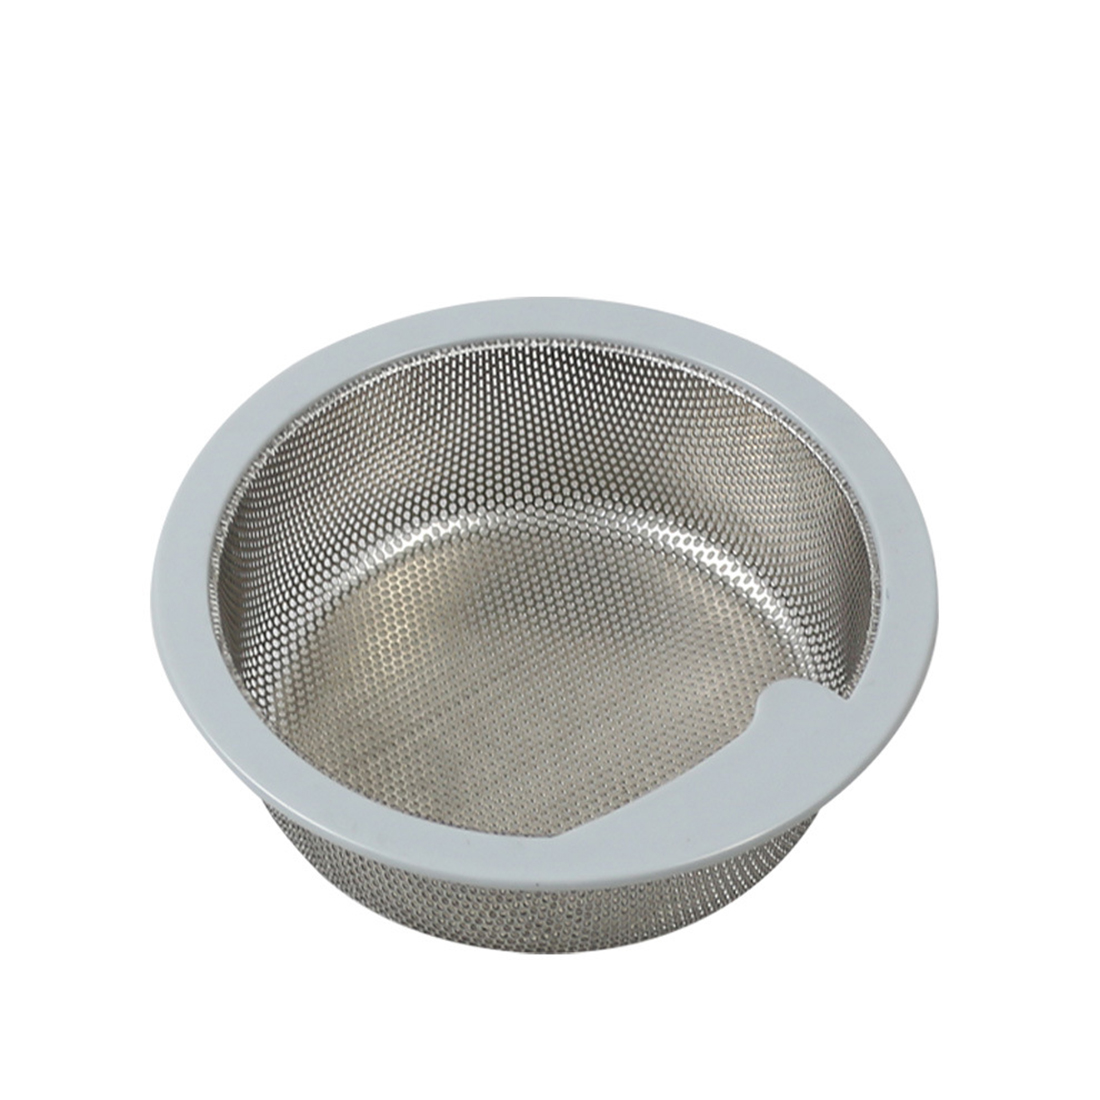 Stainless Steel Hair Stoppers Catchers Sink Filter Hair Colanders Strainers Filter Round Kitchen Drain Bathroom Sink Accessories